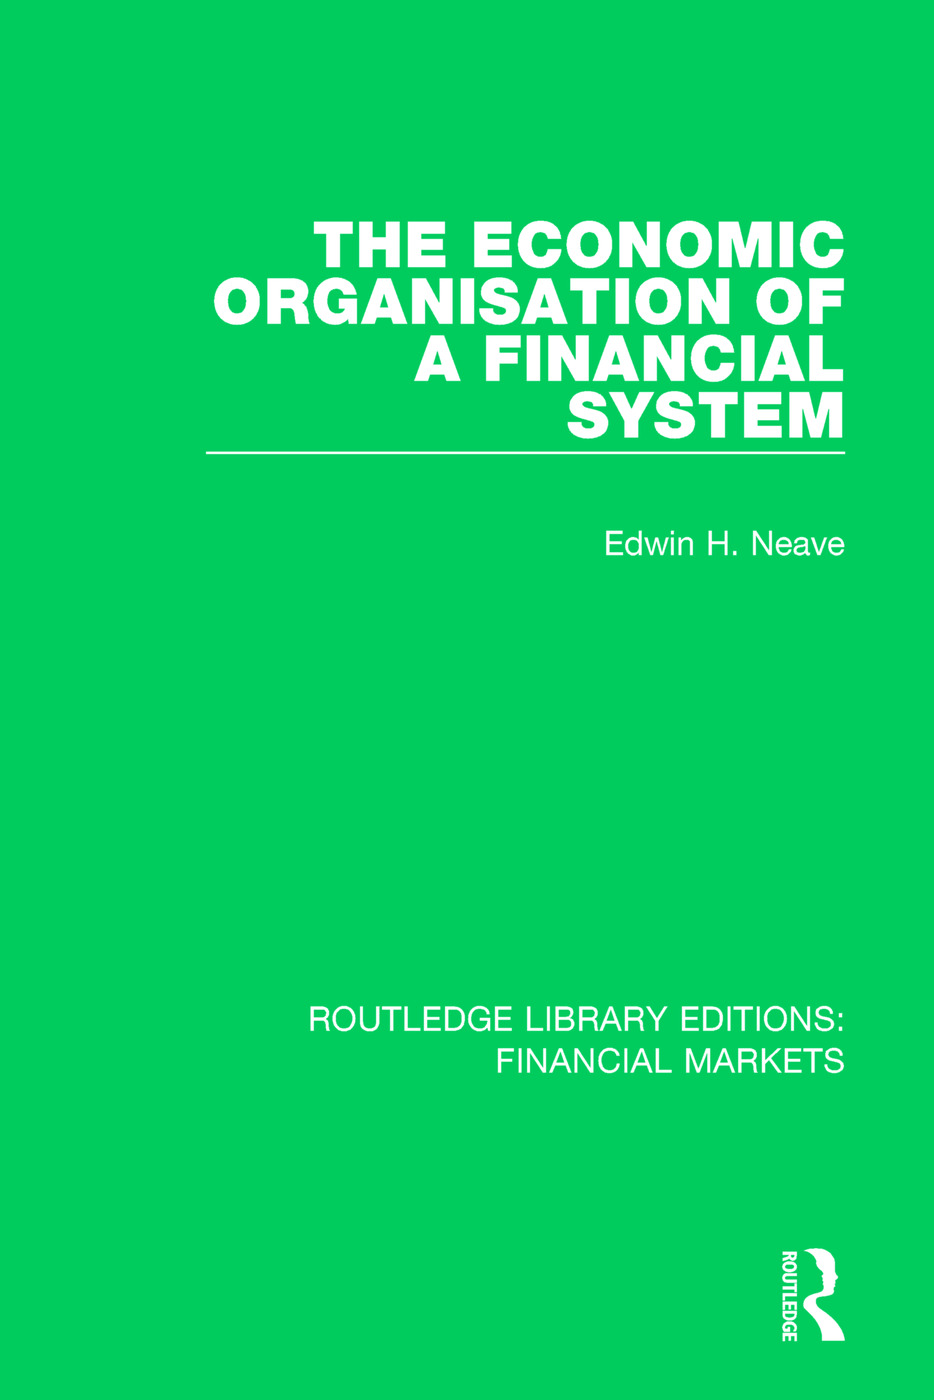 The Economic Organisation of a Financial System